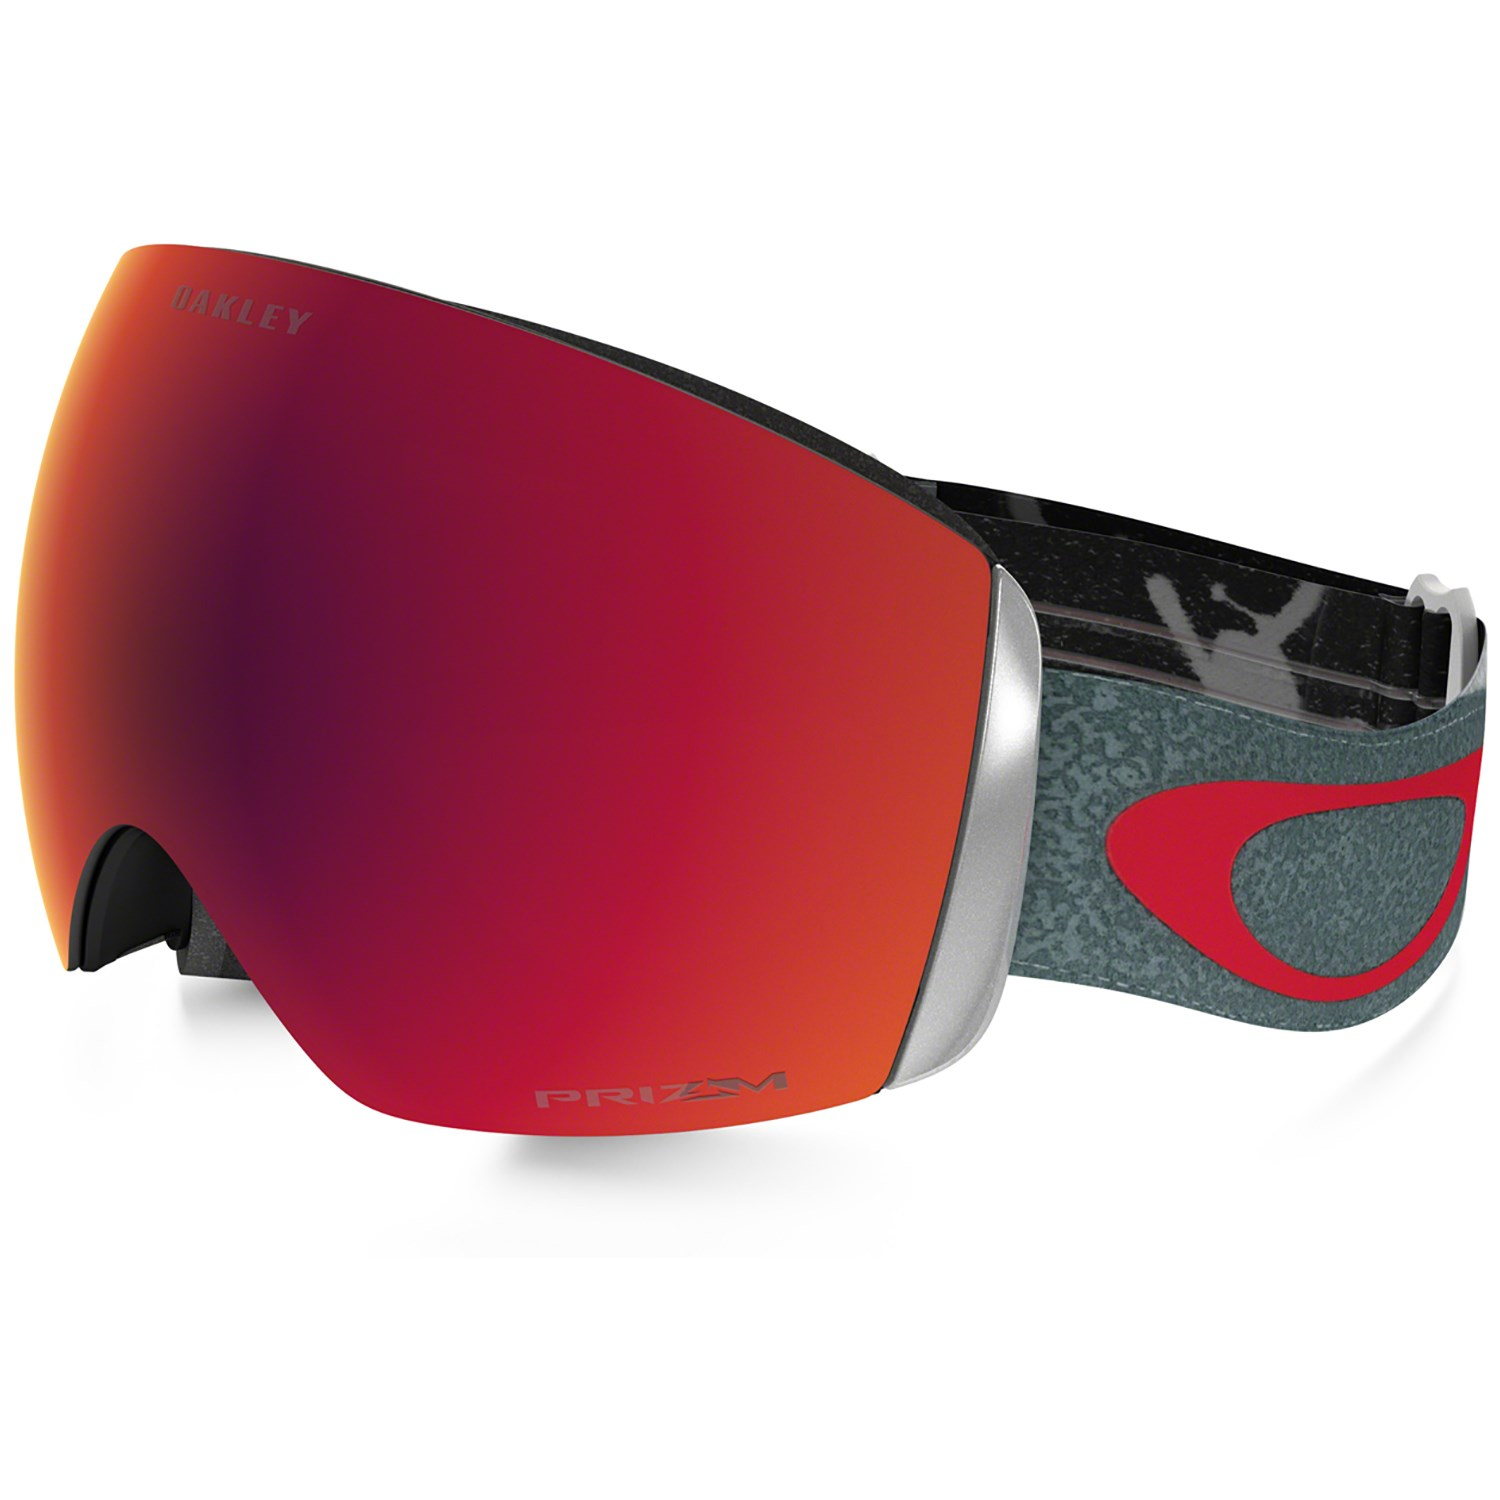 oakley over the glass goggles  oakley flight deck henrik harlaut goggles $210.00 $178.99 sale